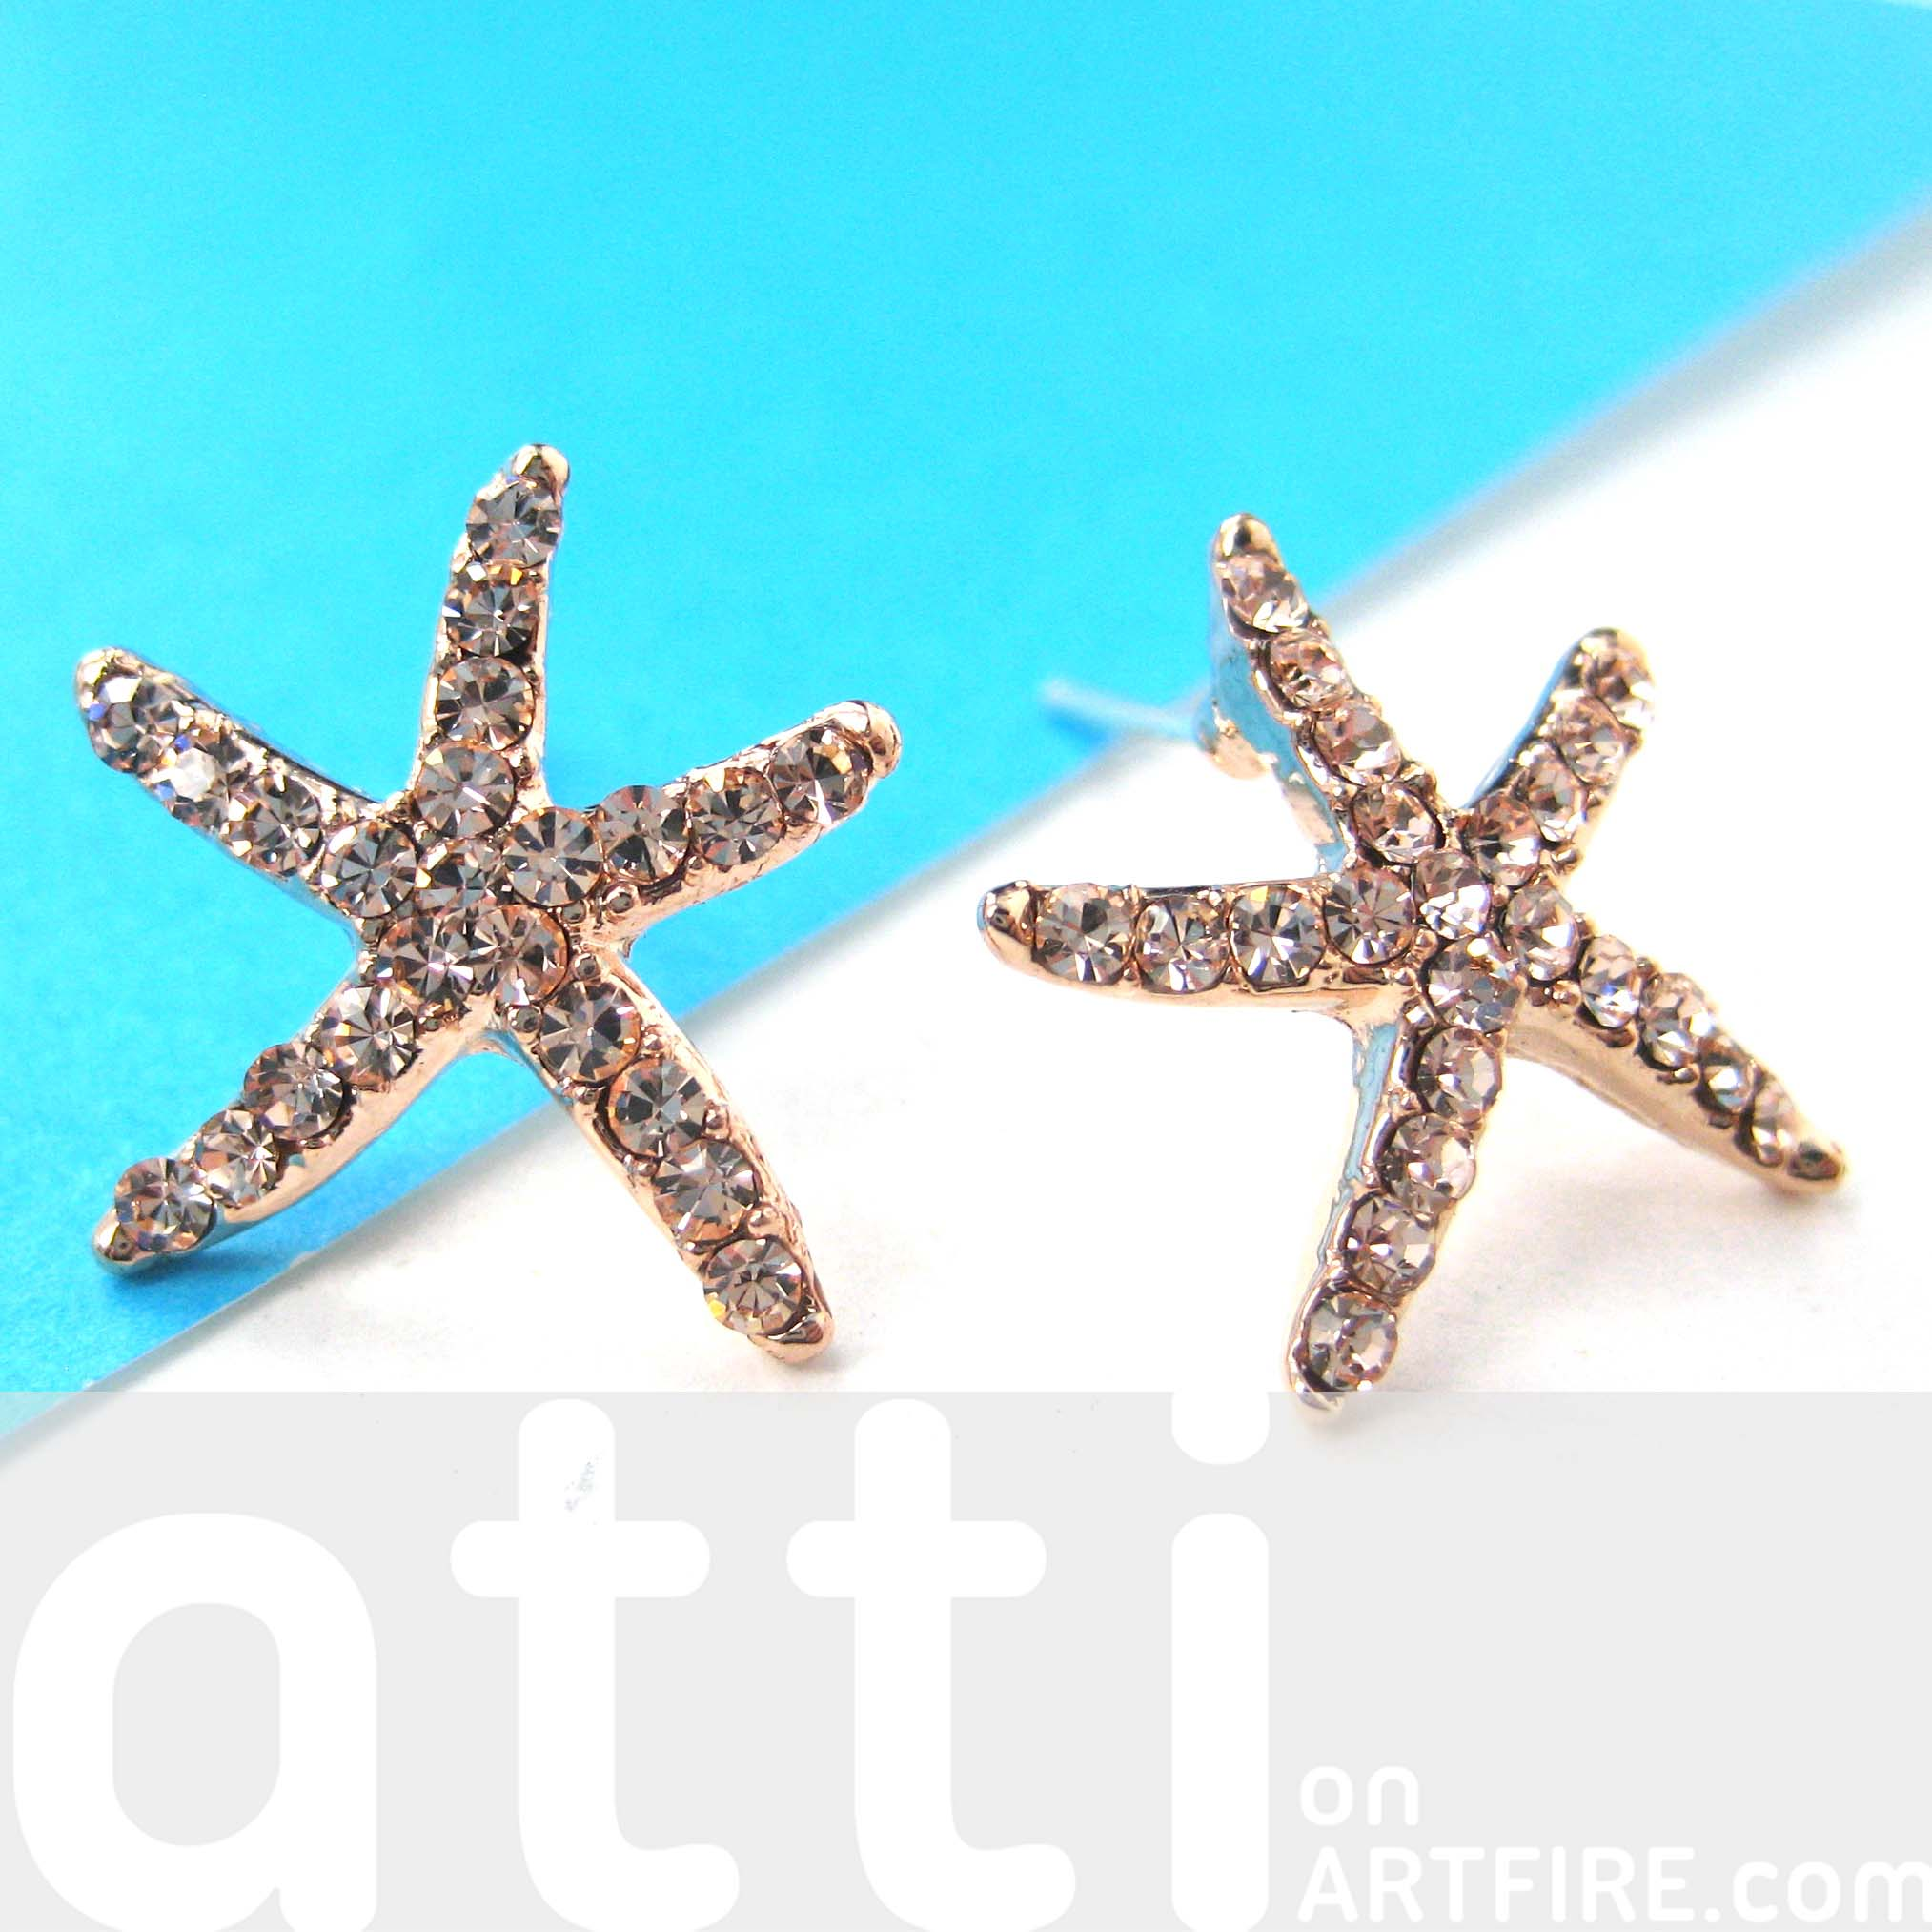 starfish design gold earrings carat stud